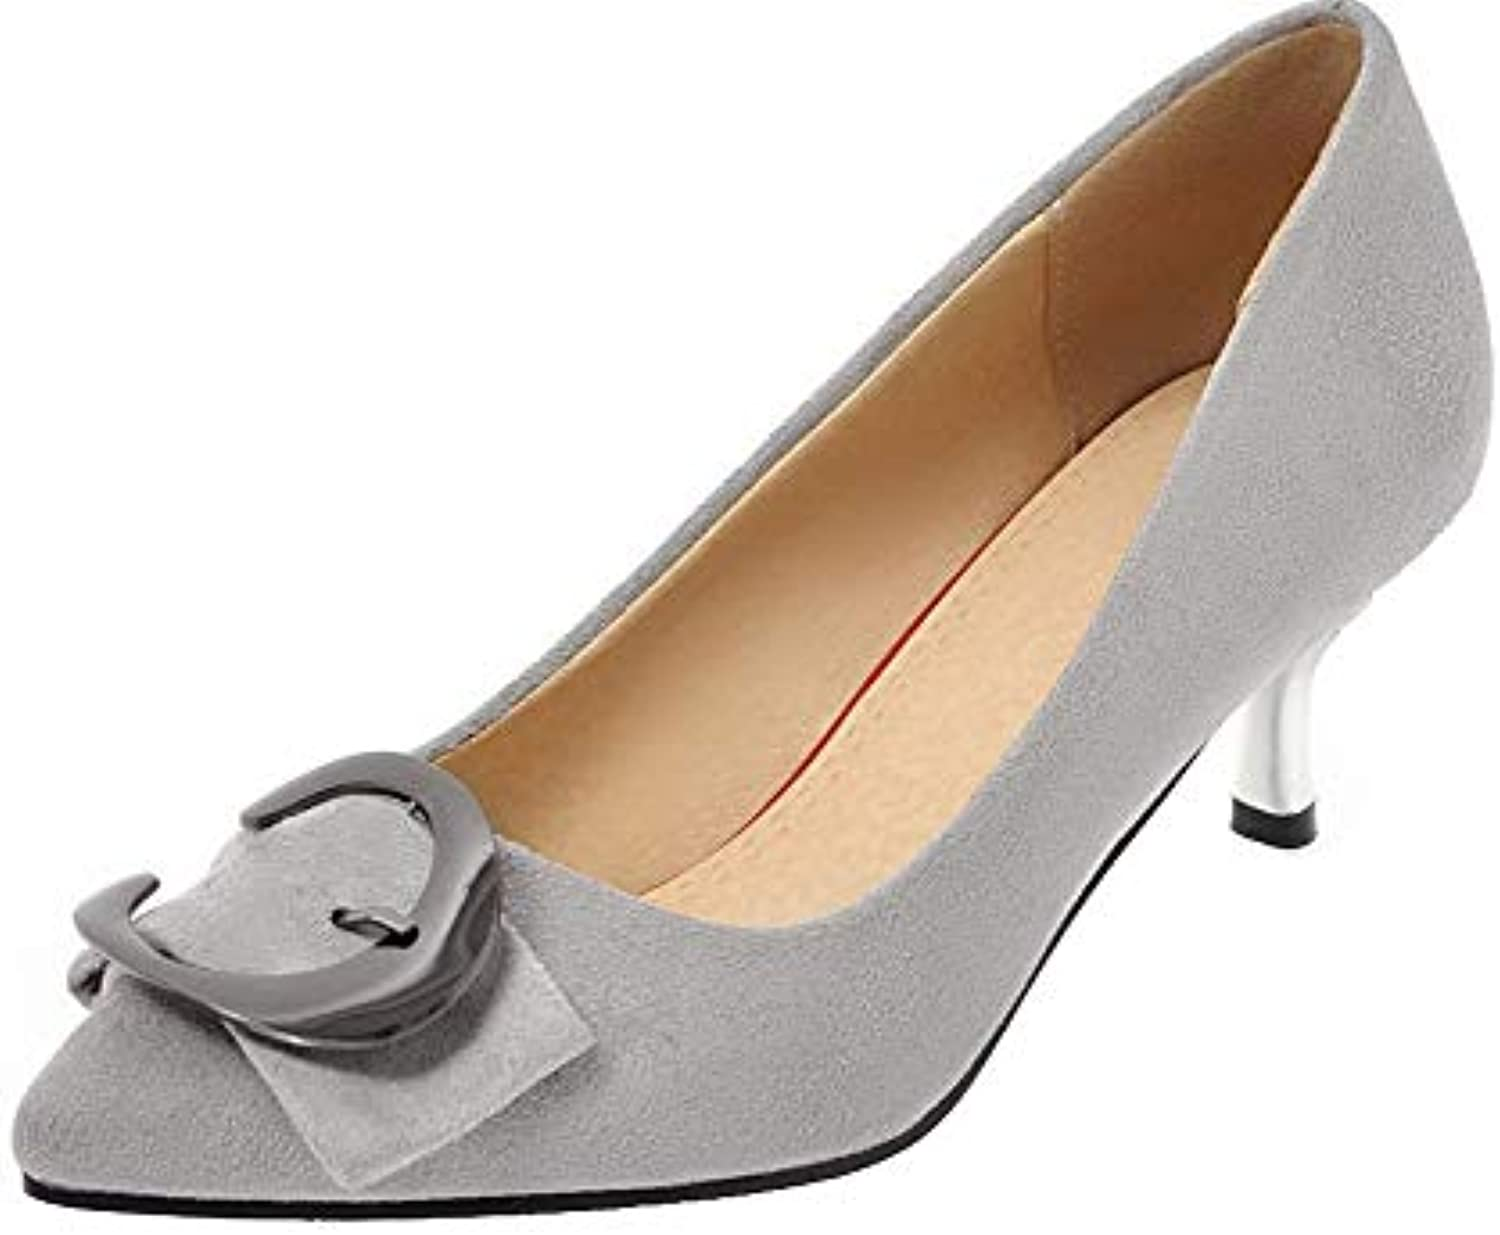 a6b3ce2772245a AgooLar Women s Solid Pu Kitten-Heels Pull-On Pull-On Pull-On Pointed  Closed Toe Pumps-Shoes